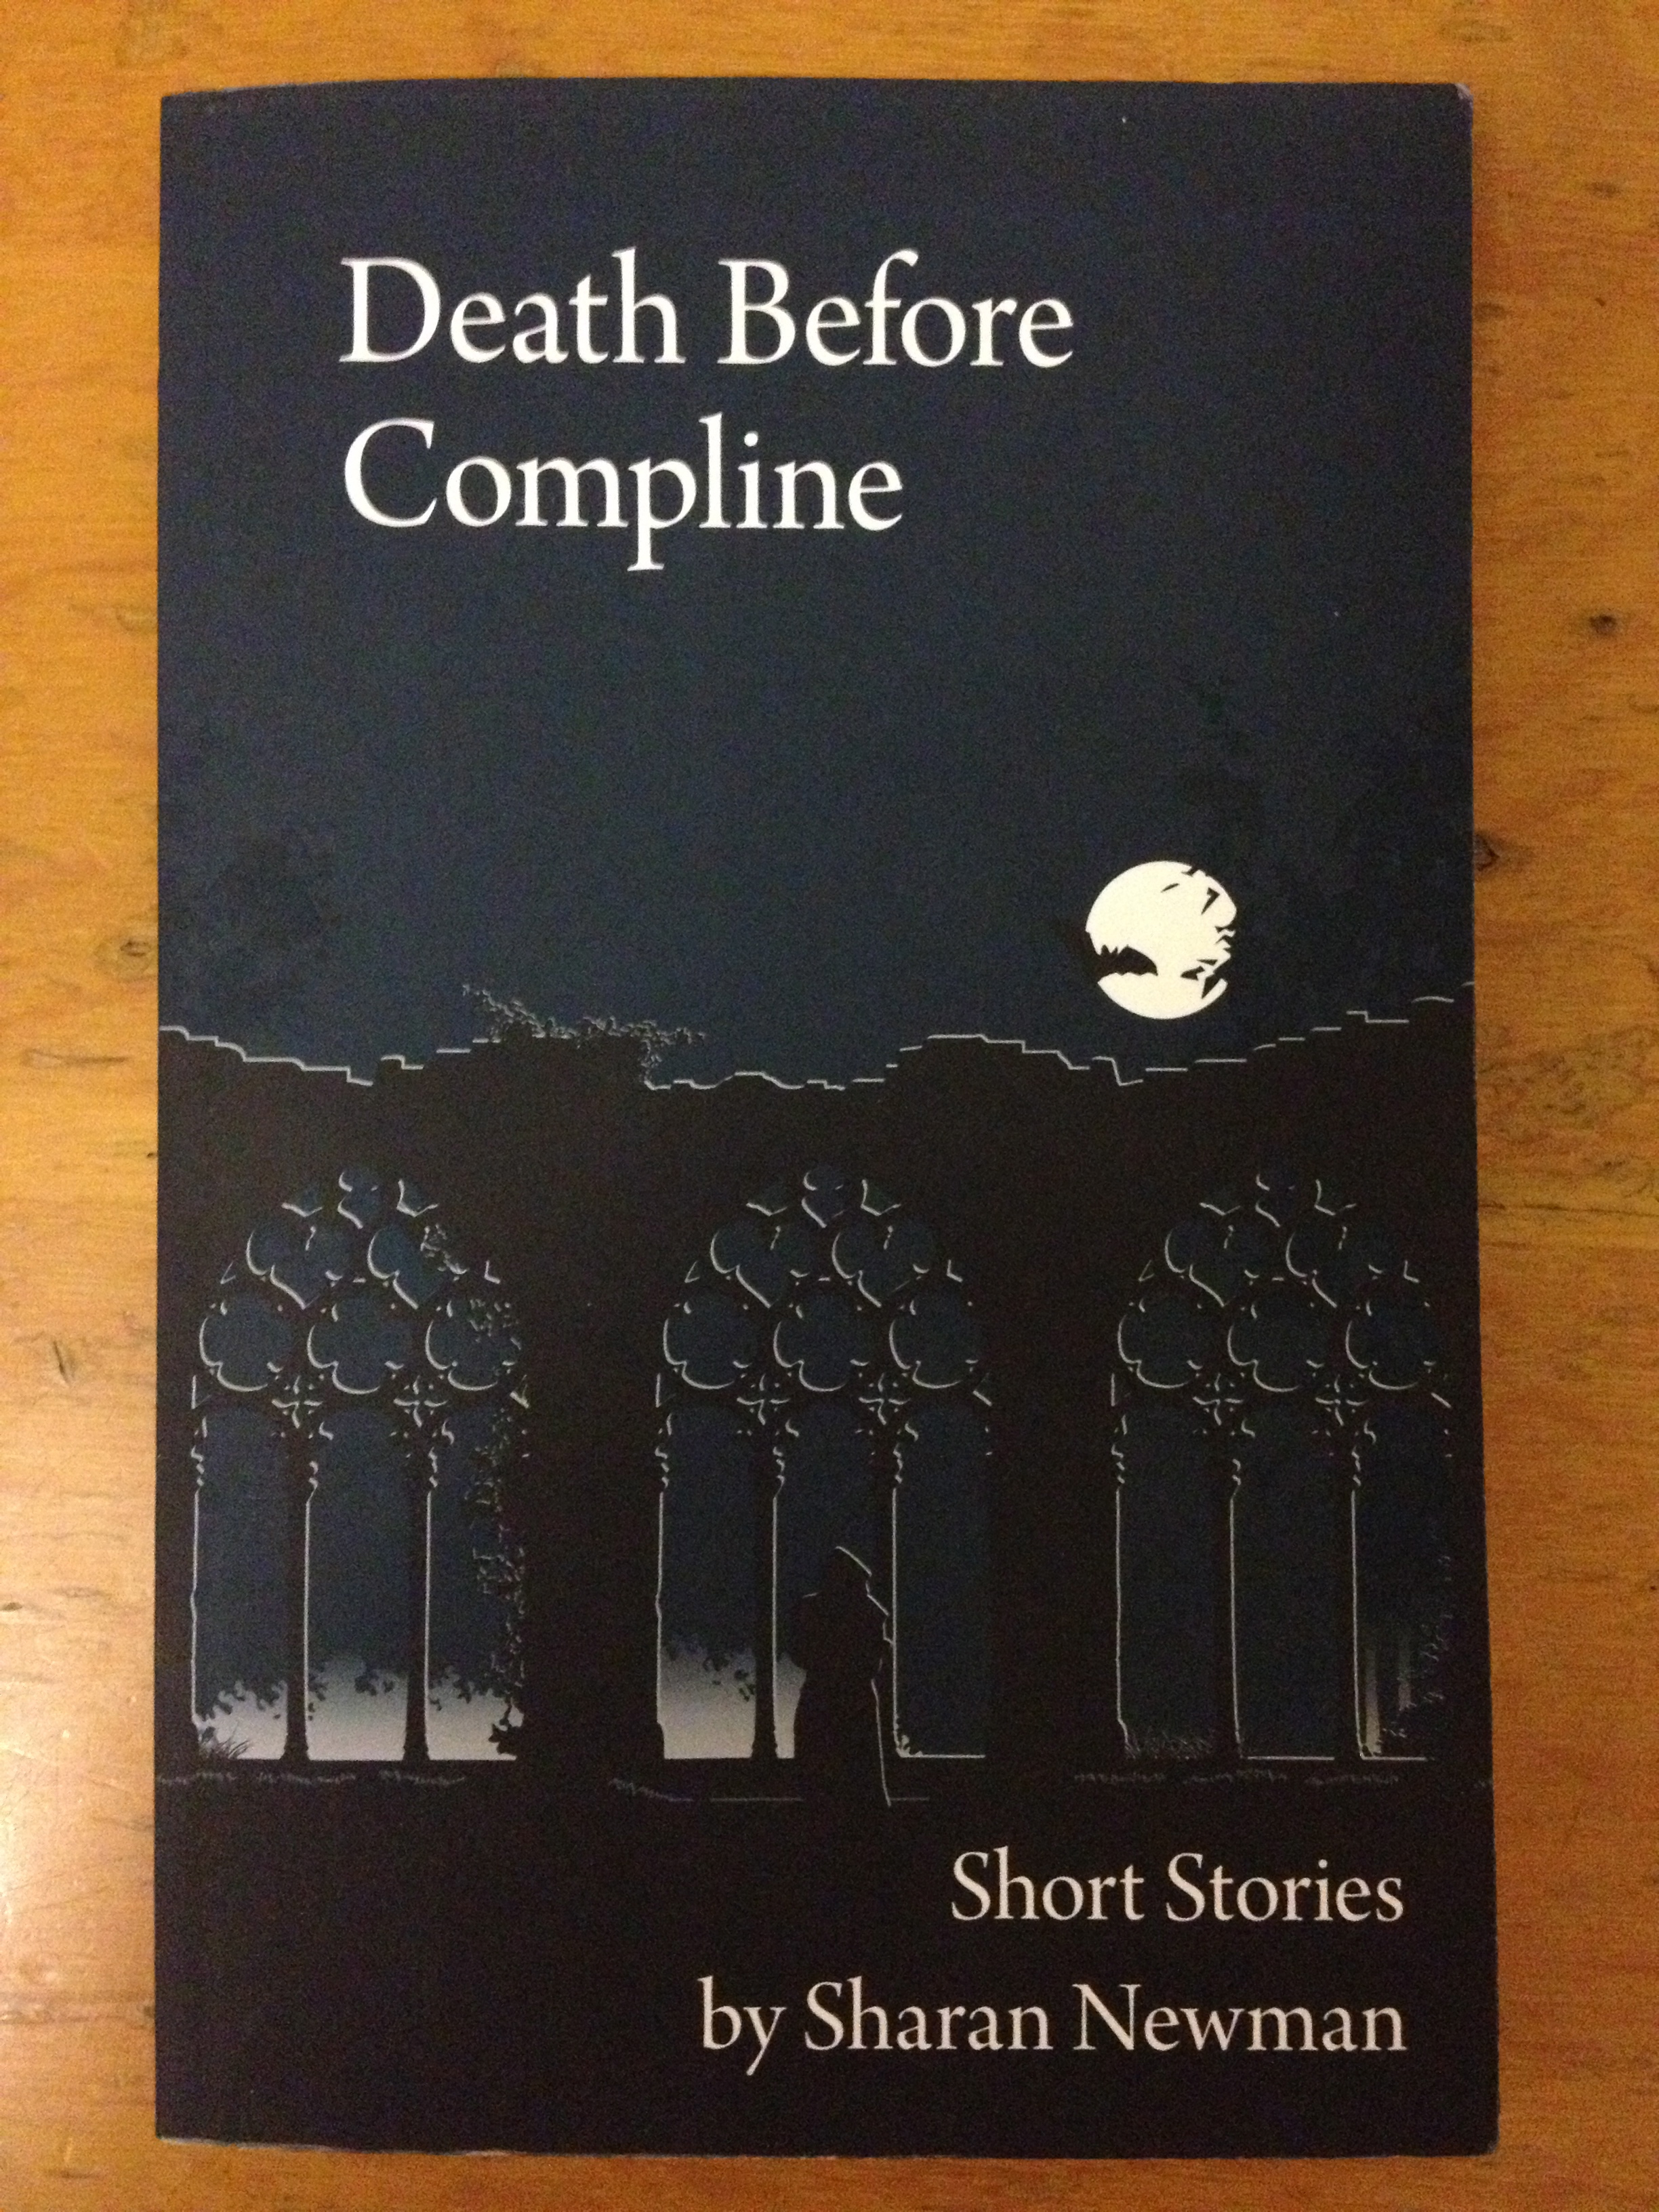 BOOK REVIEW: Death Before Compline Bagwyn Books (2012) Sharan Newman This short book, DEATH BEFORE COMPLINE is a great collection of murder-mystery stories by Sharan Newman. It features the adventures […]